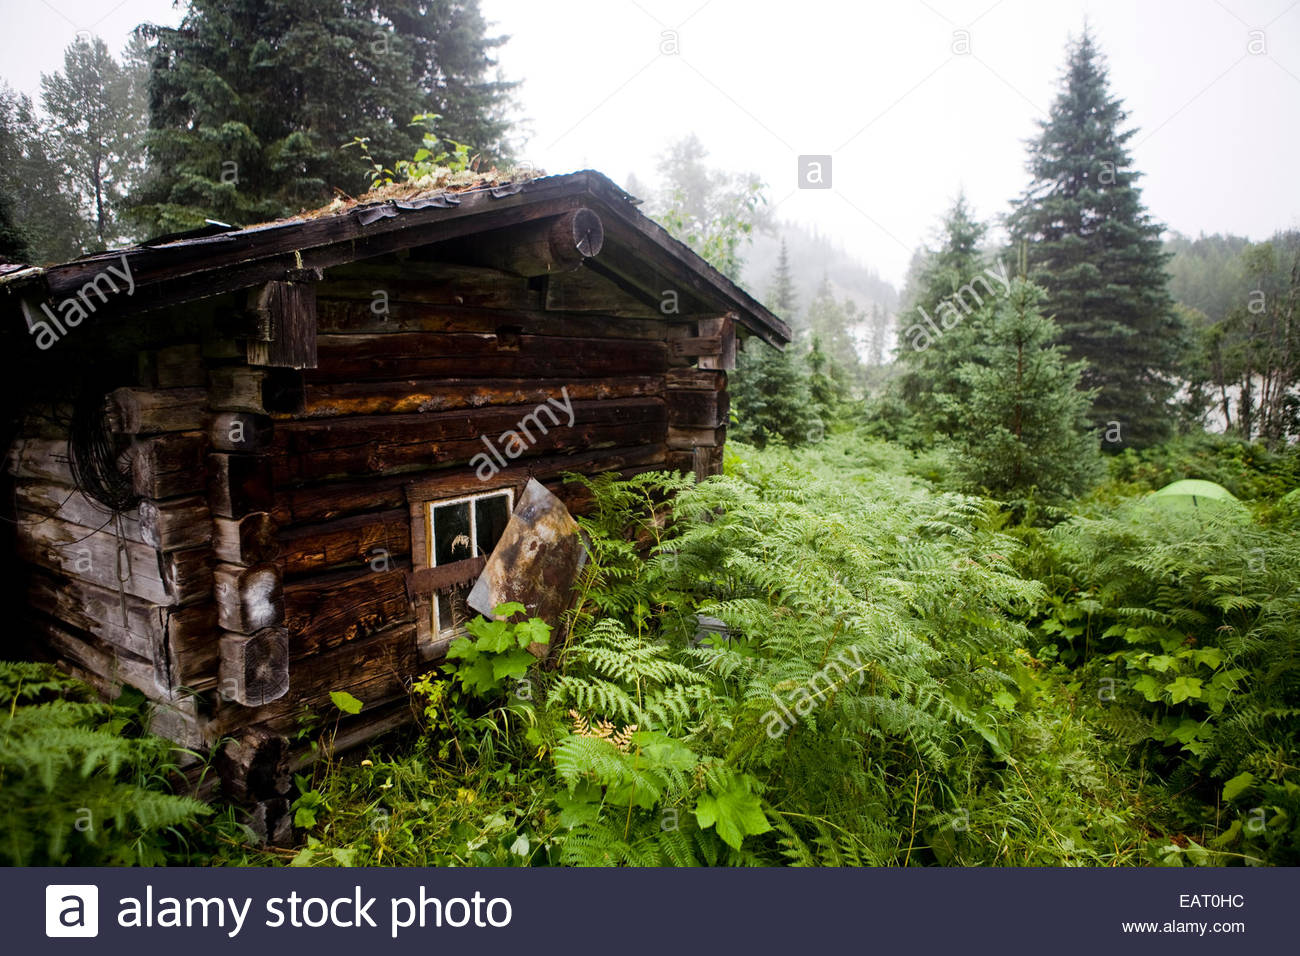 A Rustic Log Cabin In The Remote Wilderness Of Western